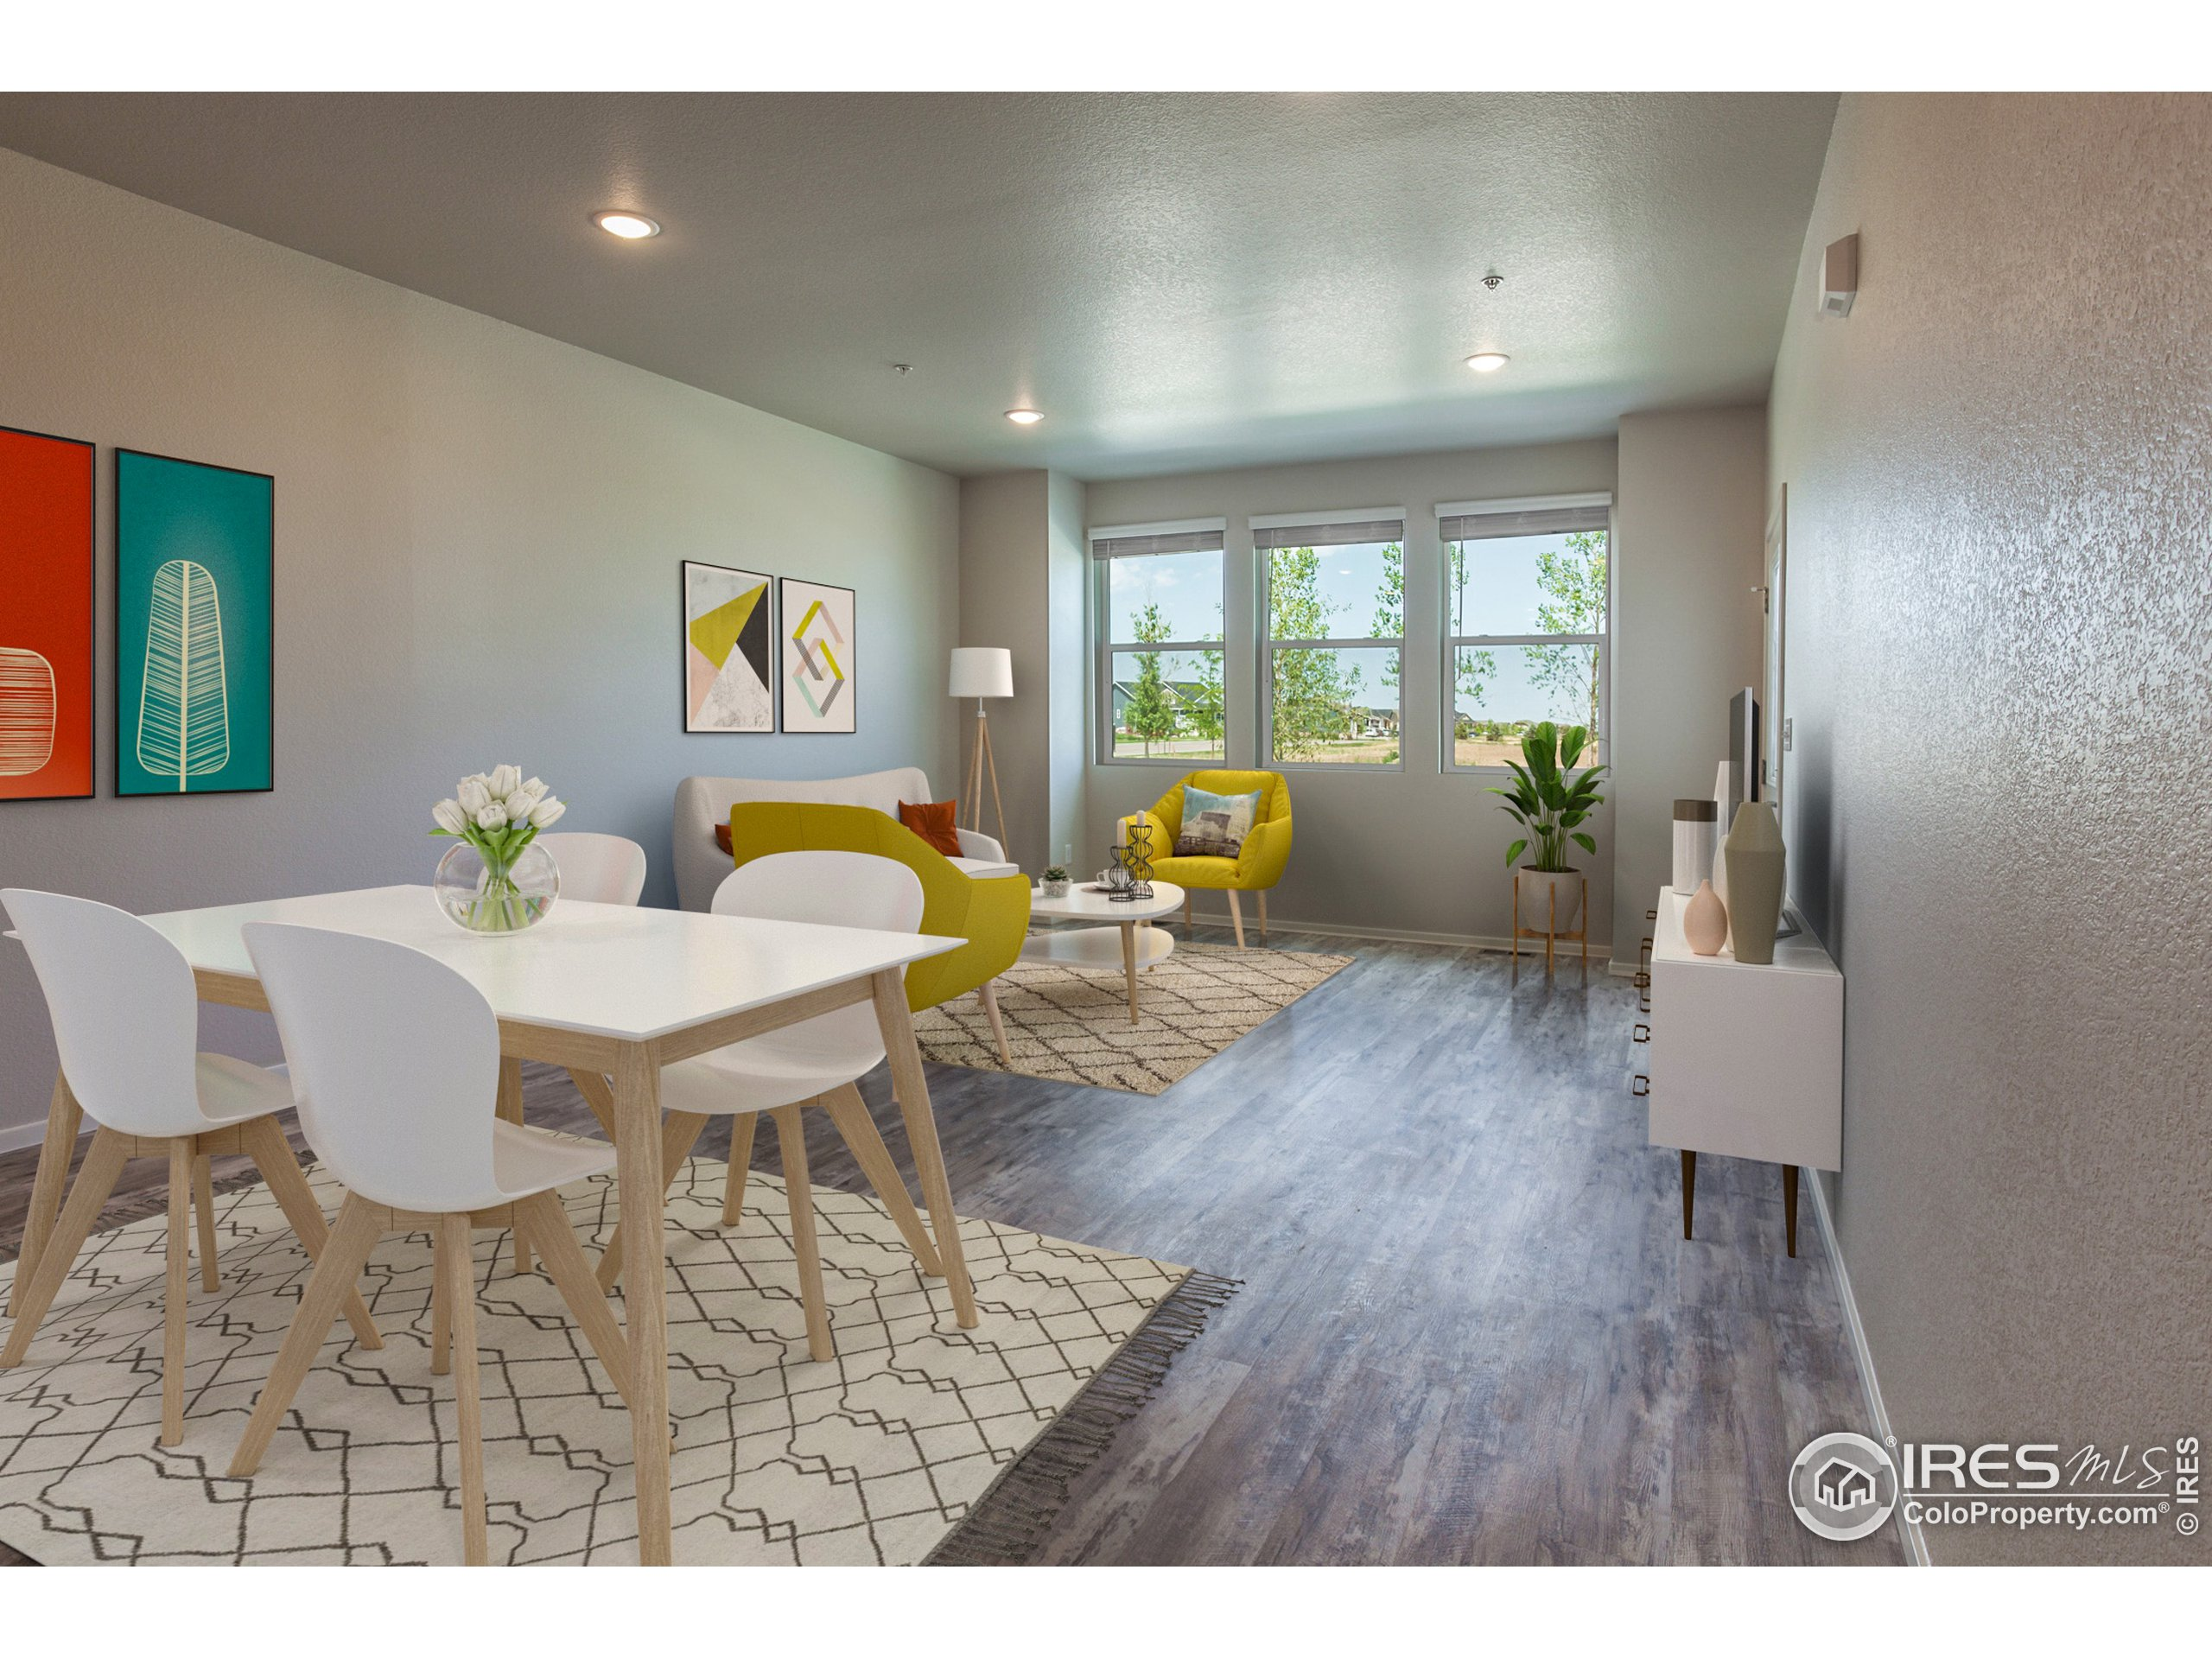 EXAMPLE PHOTOS: DINING ROOM & LIVING ROOM